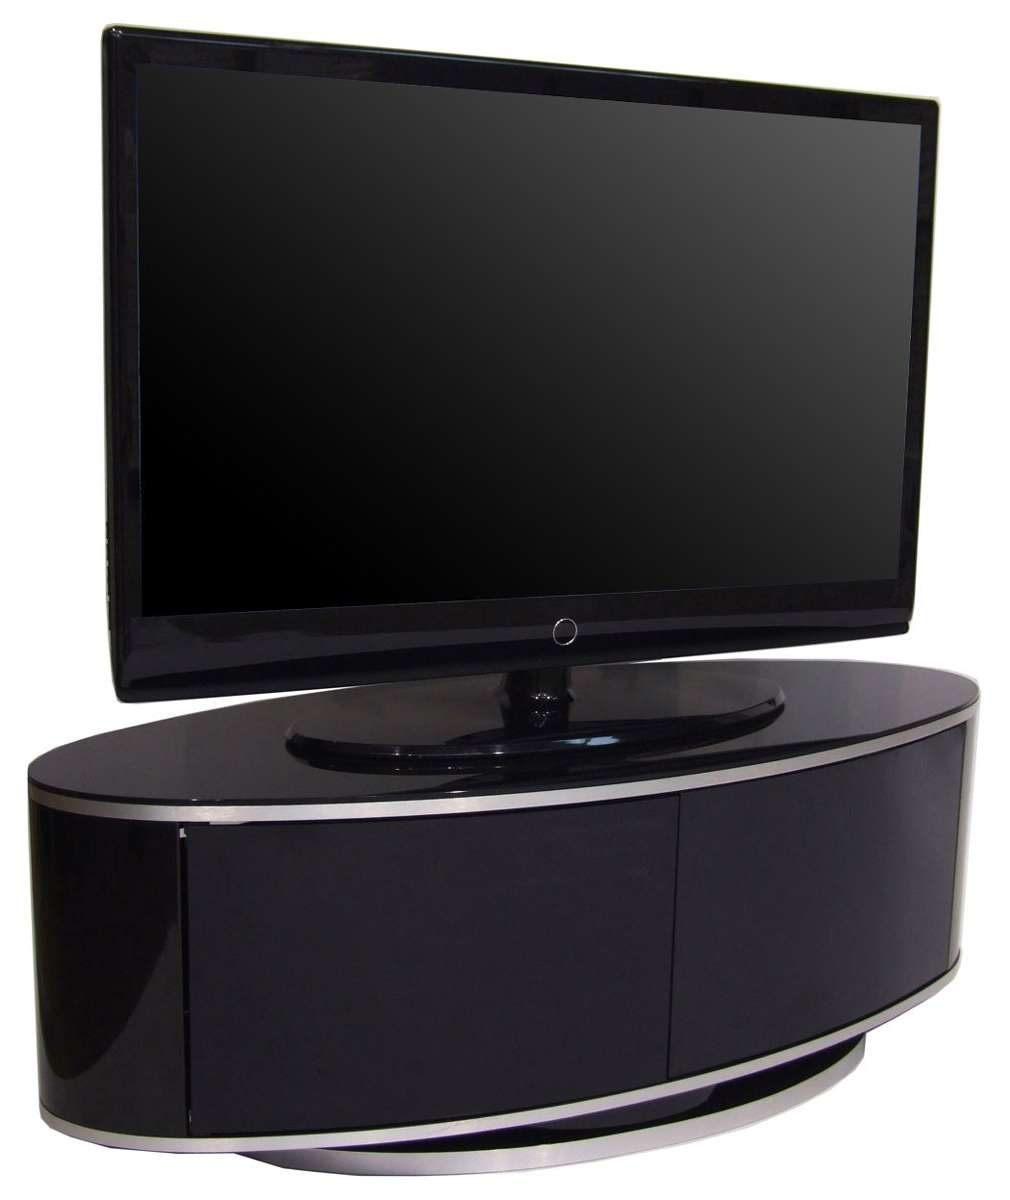 Luna High Gloss Black Oval Tv Cabinet Pertaining To Tv Cabinets Black High Gloss (View 12 of 20)